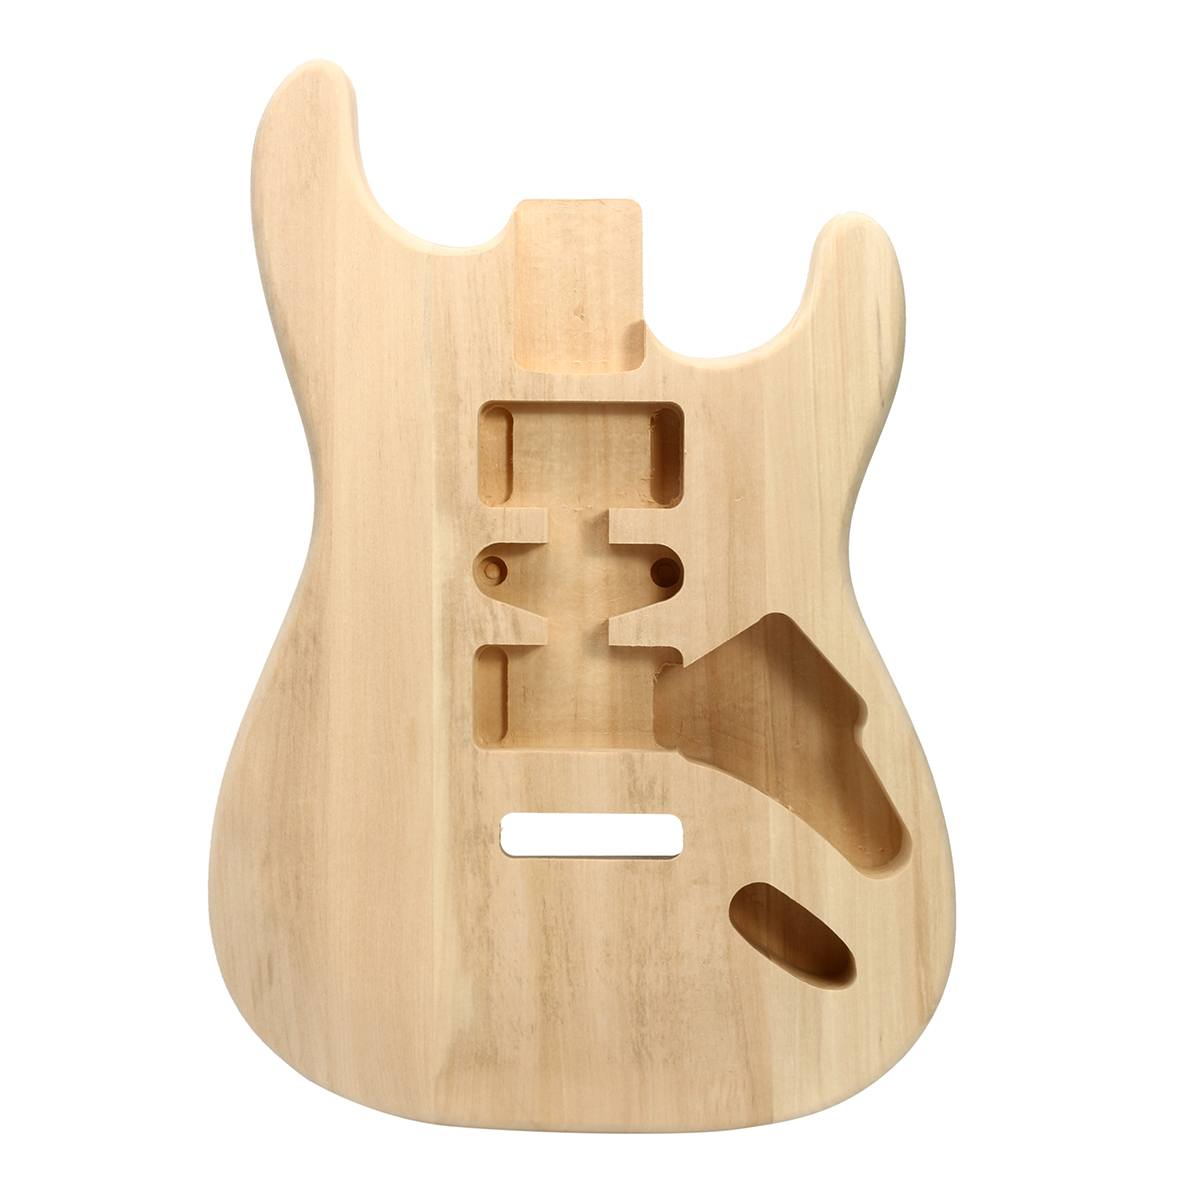 Unfinished Basswood Electric Guitar Body DIY Music Instrument Guitar Body Replacement Parts For Strings Guitars AccessoriesUnfinished Basswood Electric Guitar Body DIY Music Instrument Guitar Body Replacement Parts For Strings Guitars Accessories